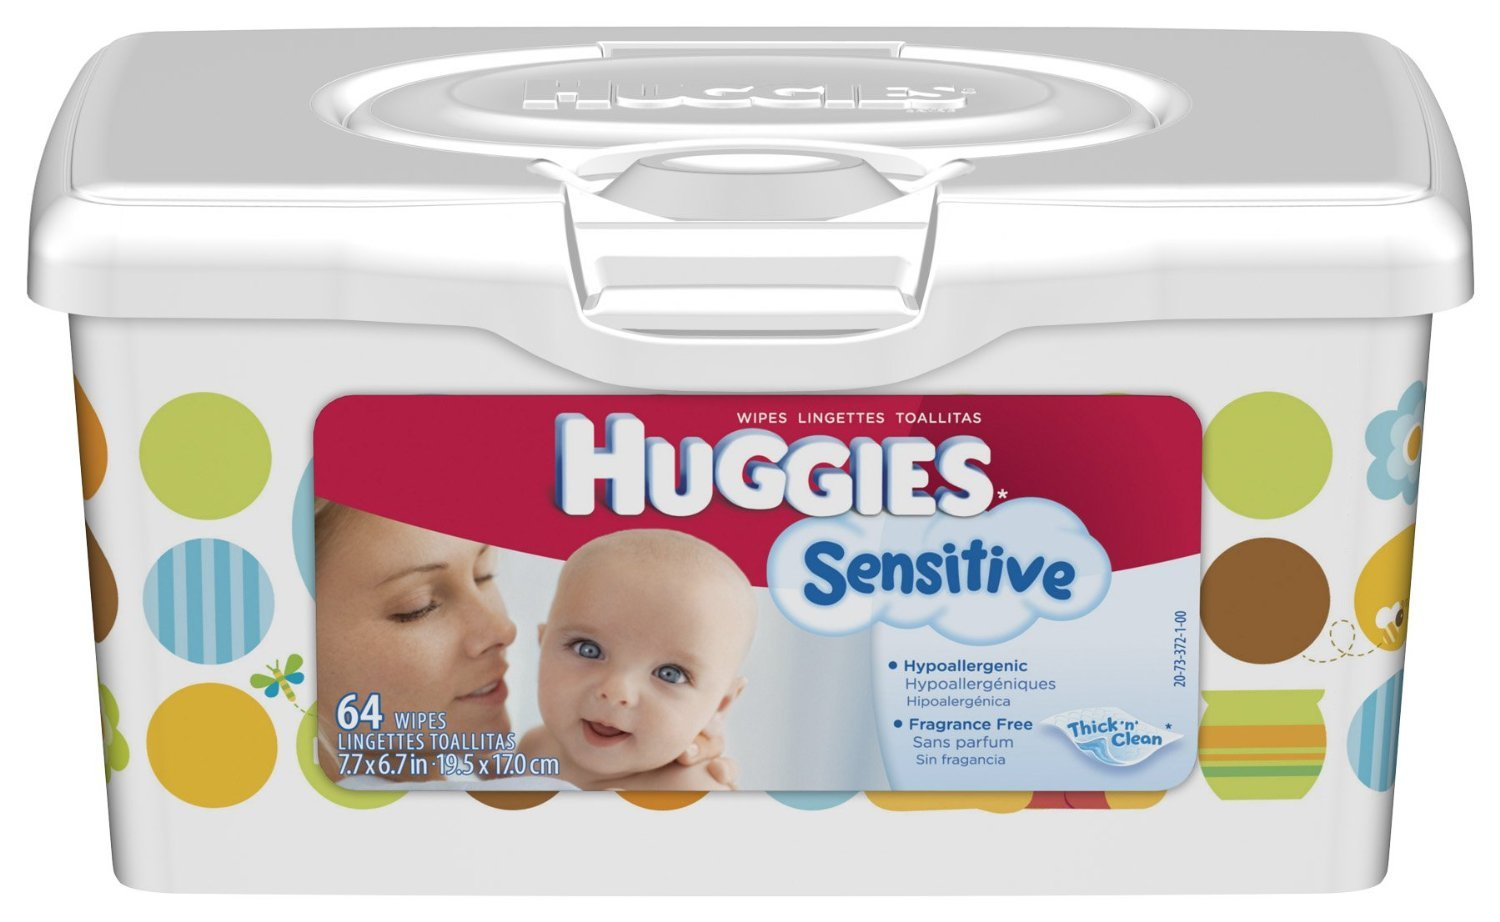 Amazon.com: Huggies Gentle Care Sensitive Baby Wipes, 64 count (pack of 8) (512 wipes): Health & Personal Care